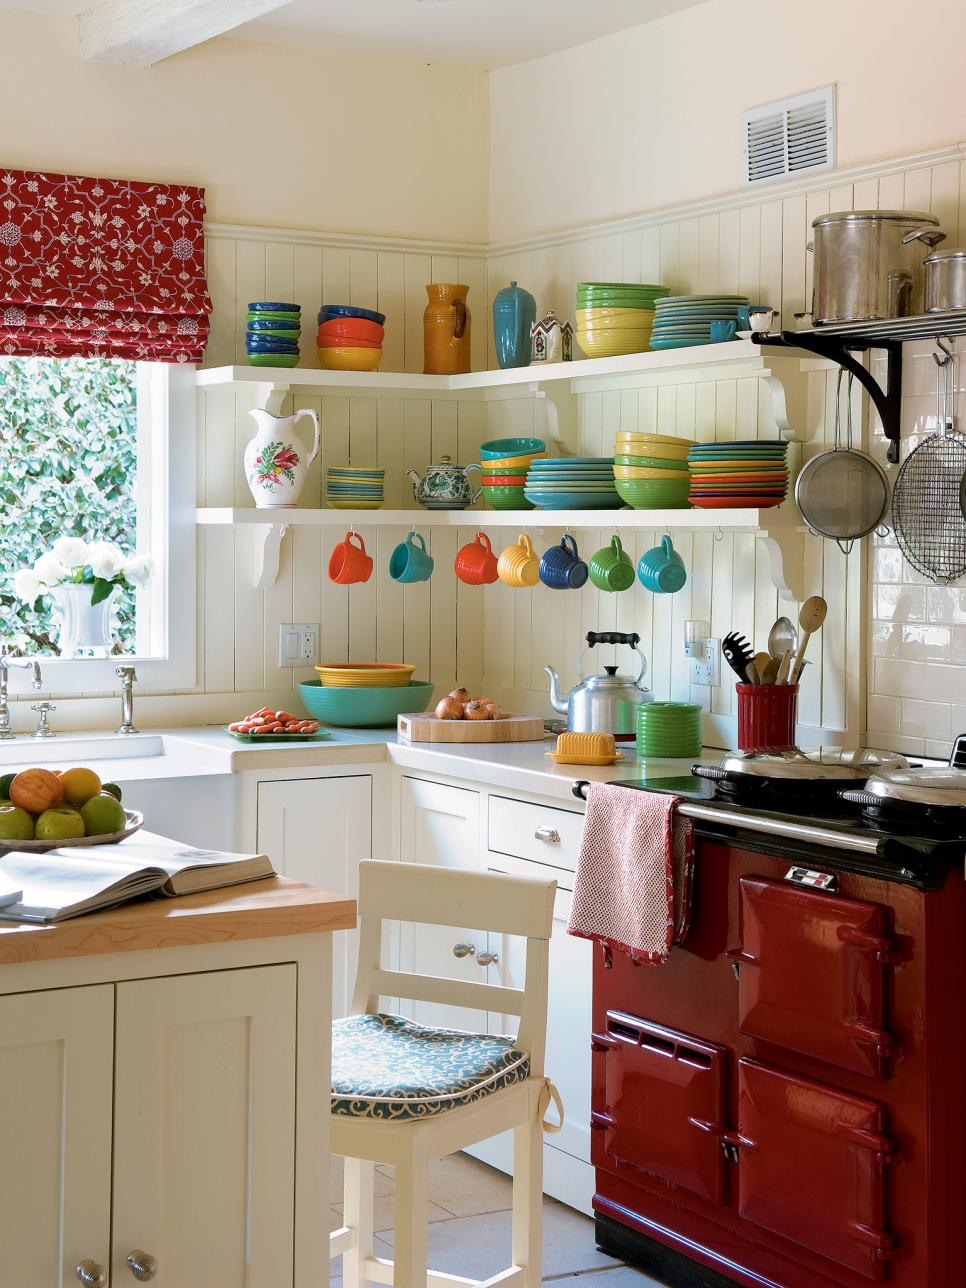 Pictures Of Small Kitchen Design Ideas From Hgtv Hgtv Kitchen Designs For Small Kitchen